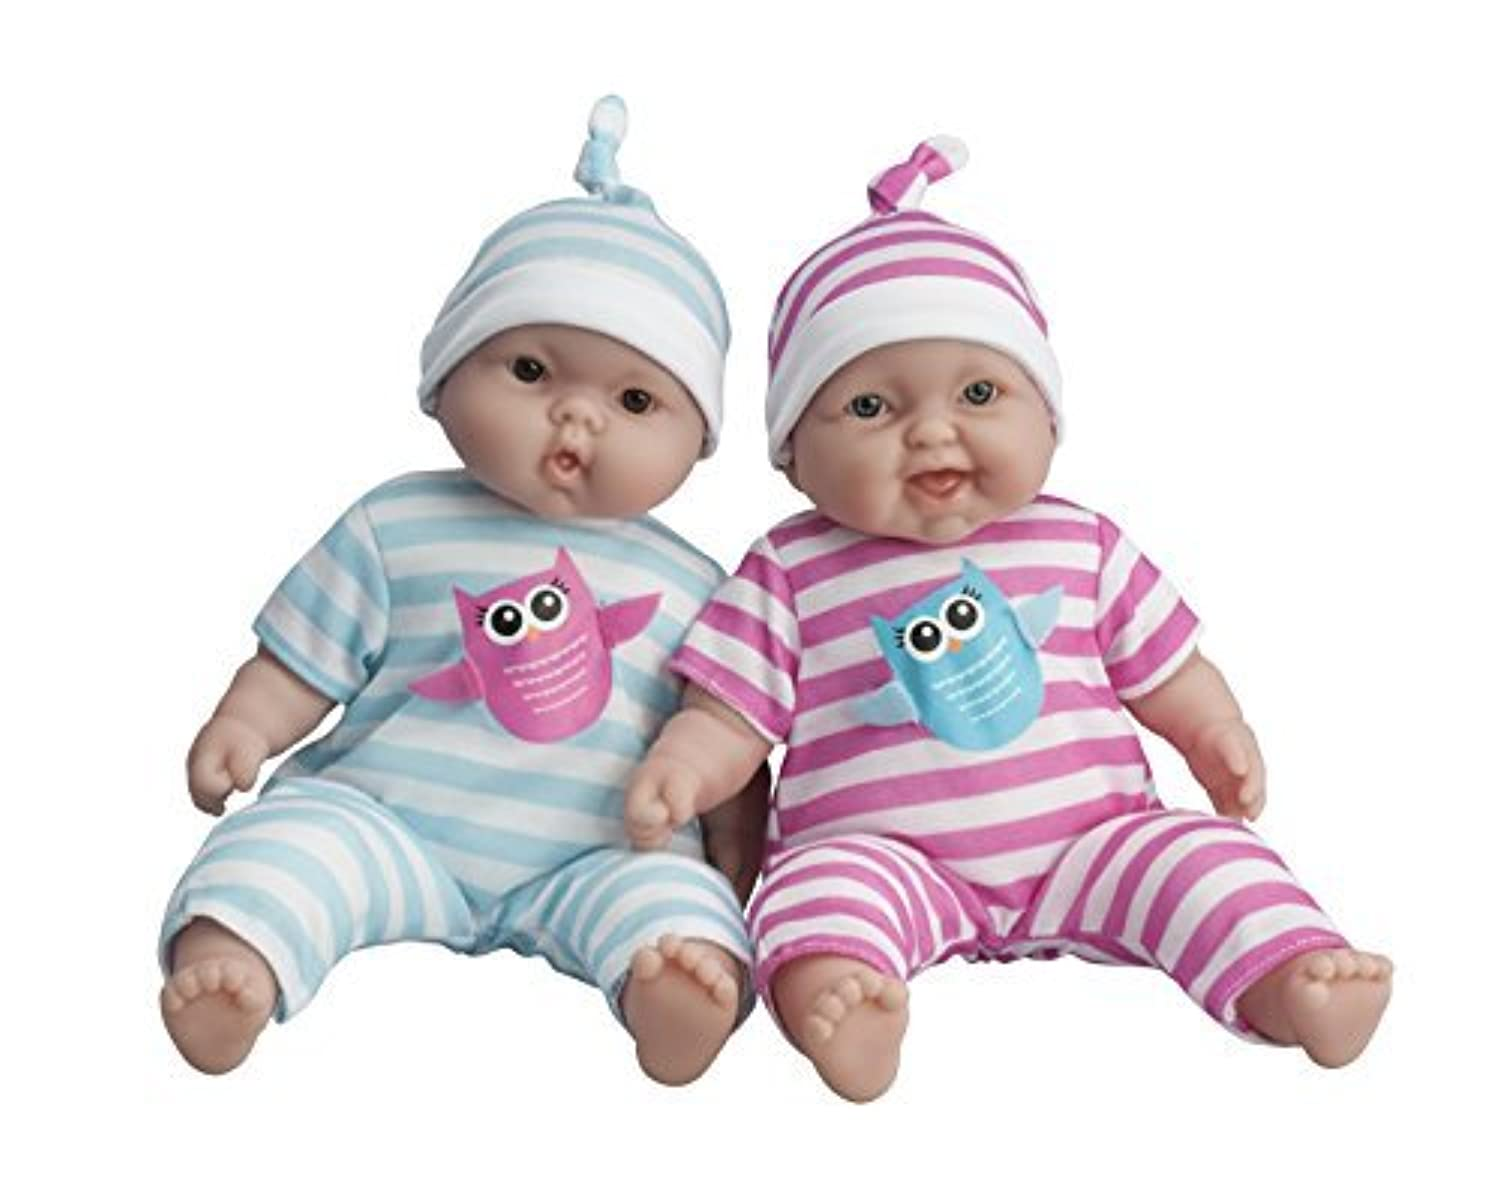 JC Toys Lots to Cuddle Babies, 13-Inch Baby Soft Doll Soft Body Twins, Designed by Berenguer by JC Toys